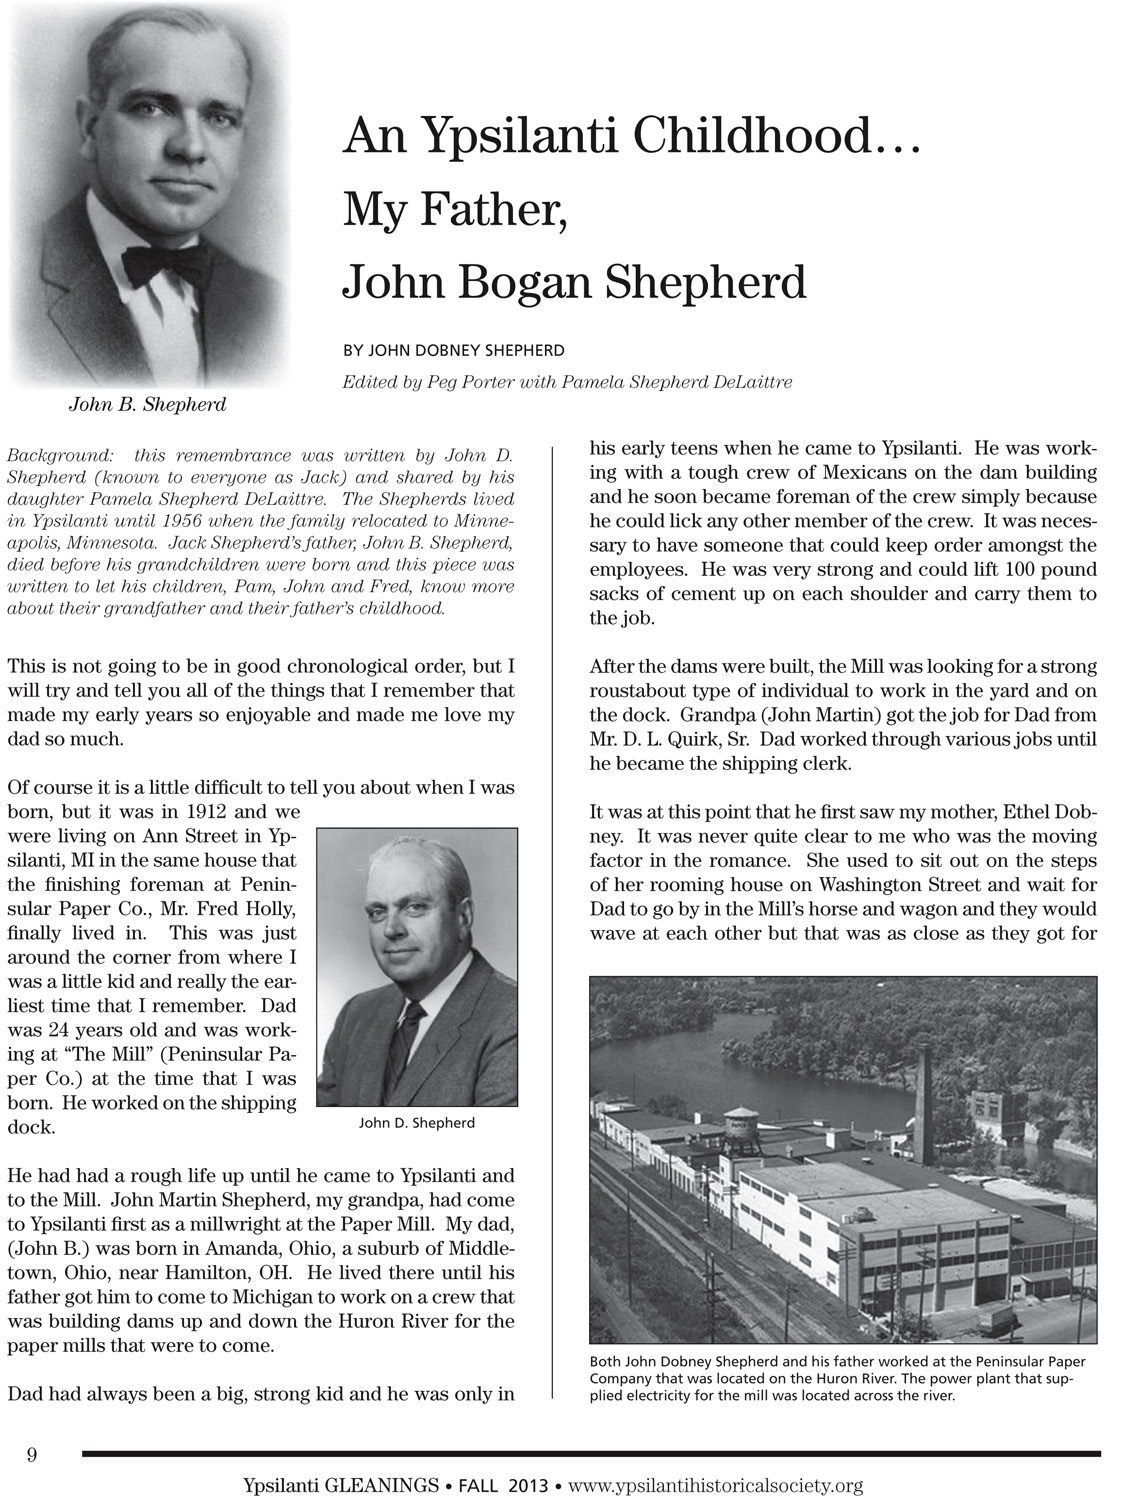 An Ypsilanti Childhood…My Father, John Bogan Shepherd image